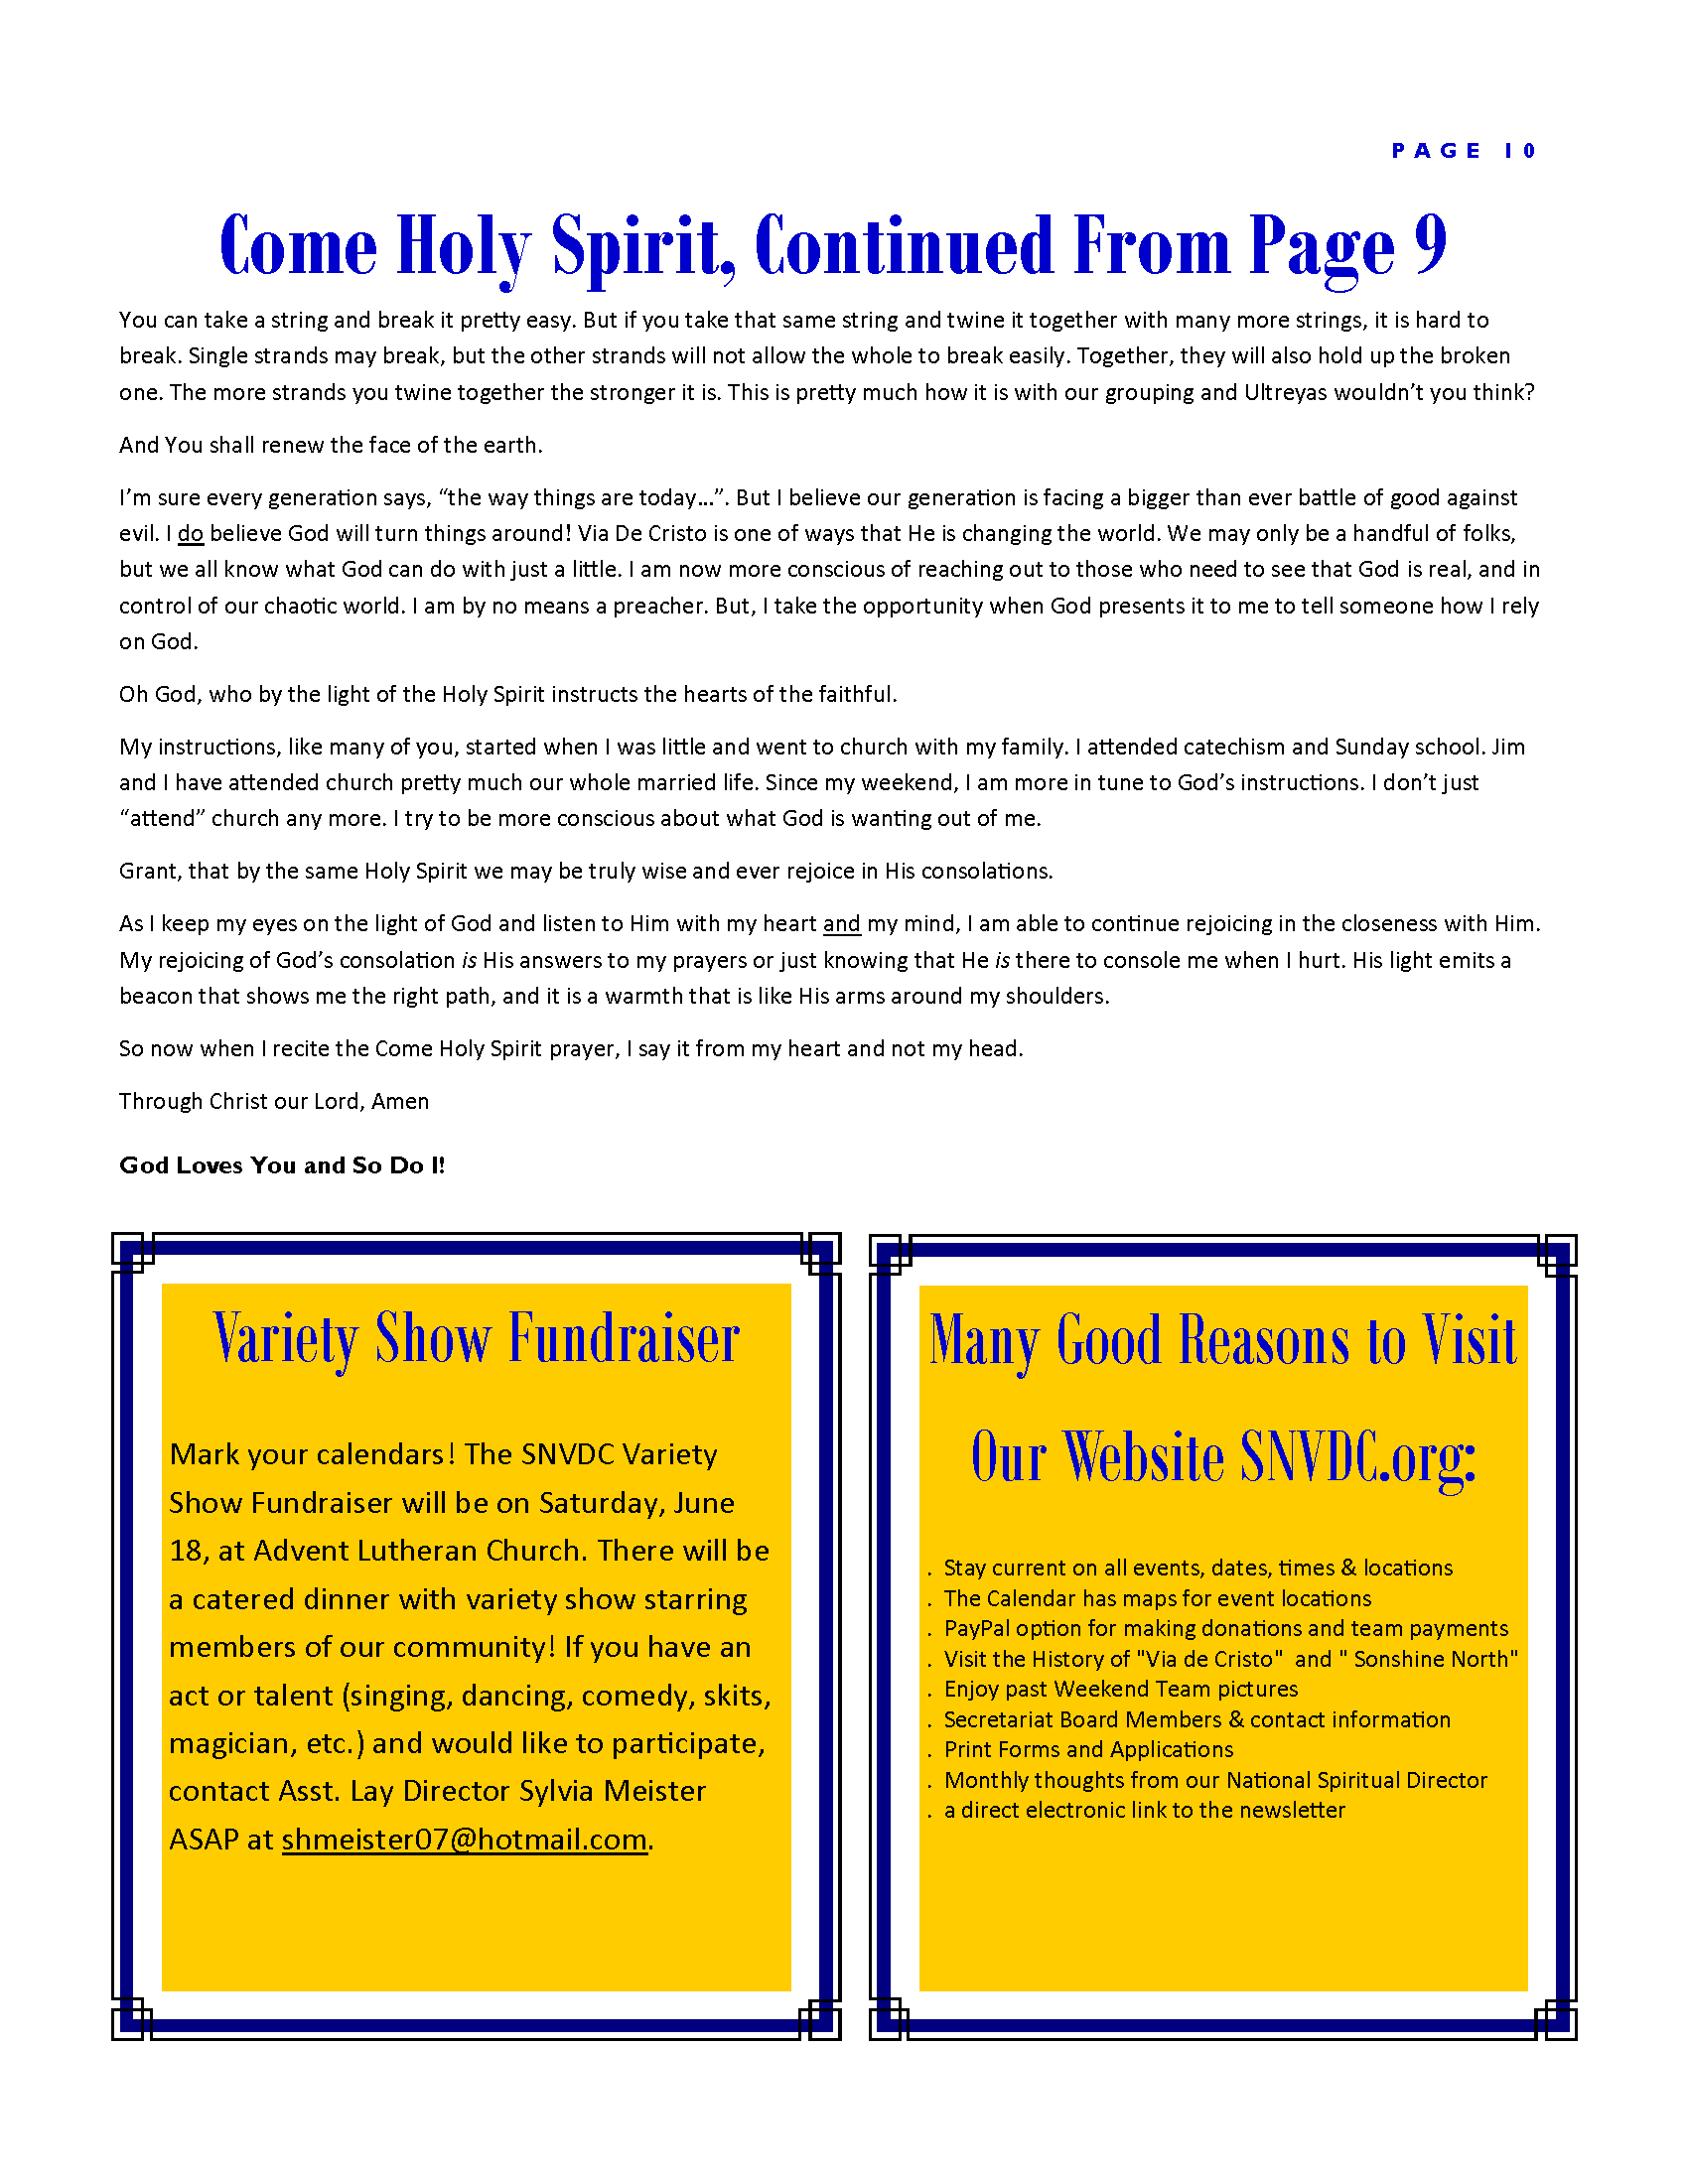 SNVDC Newsletter March 2016_Page_10